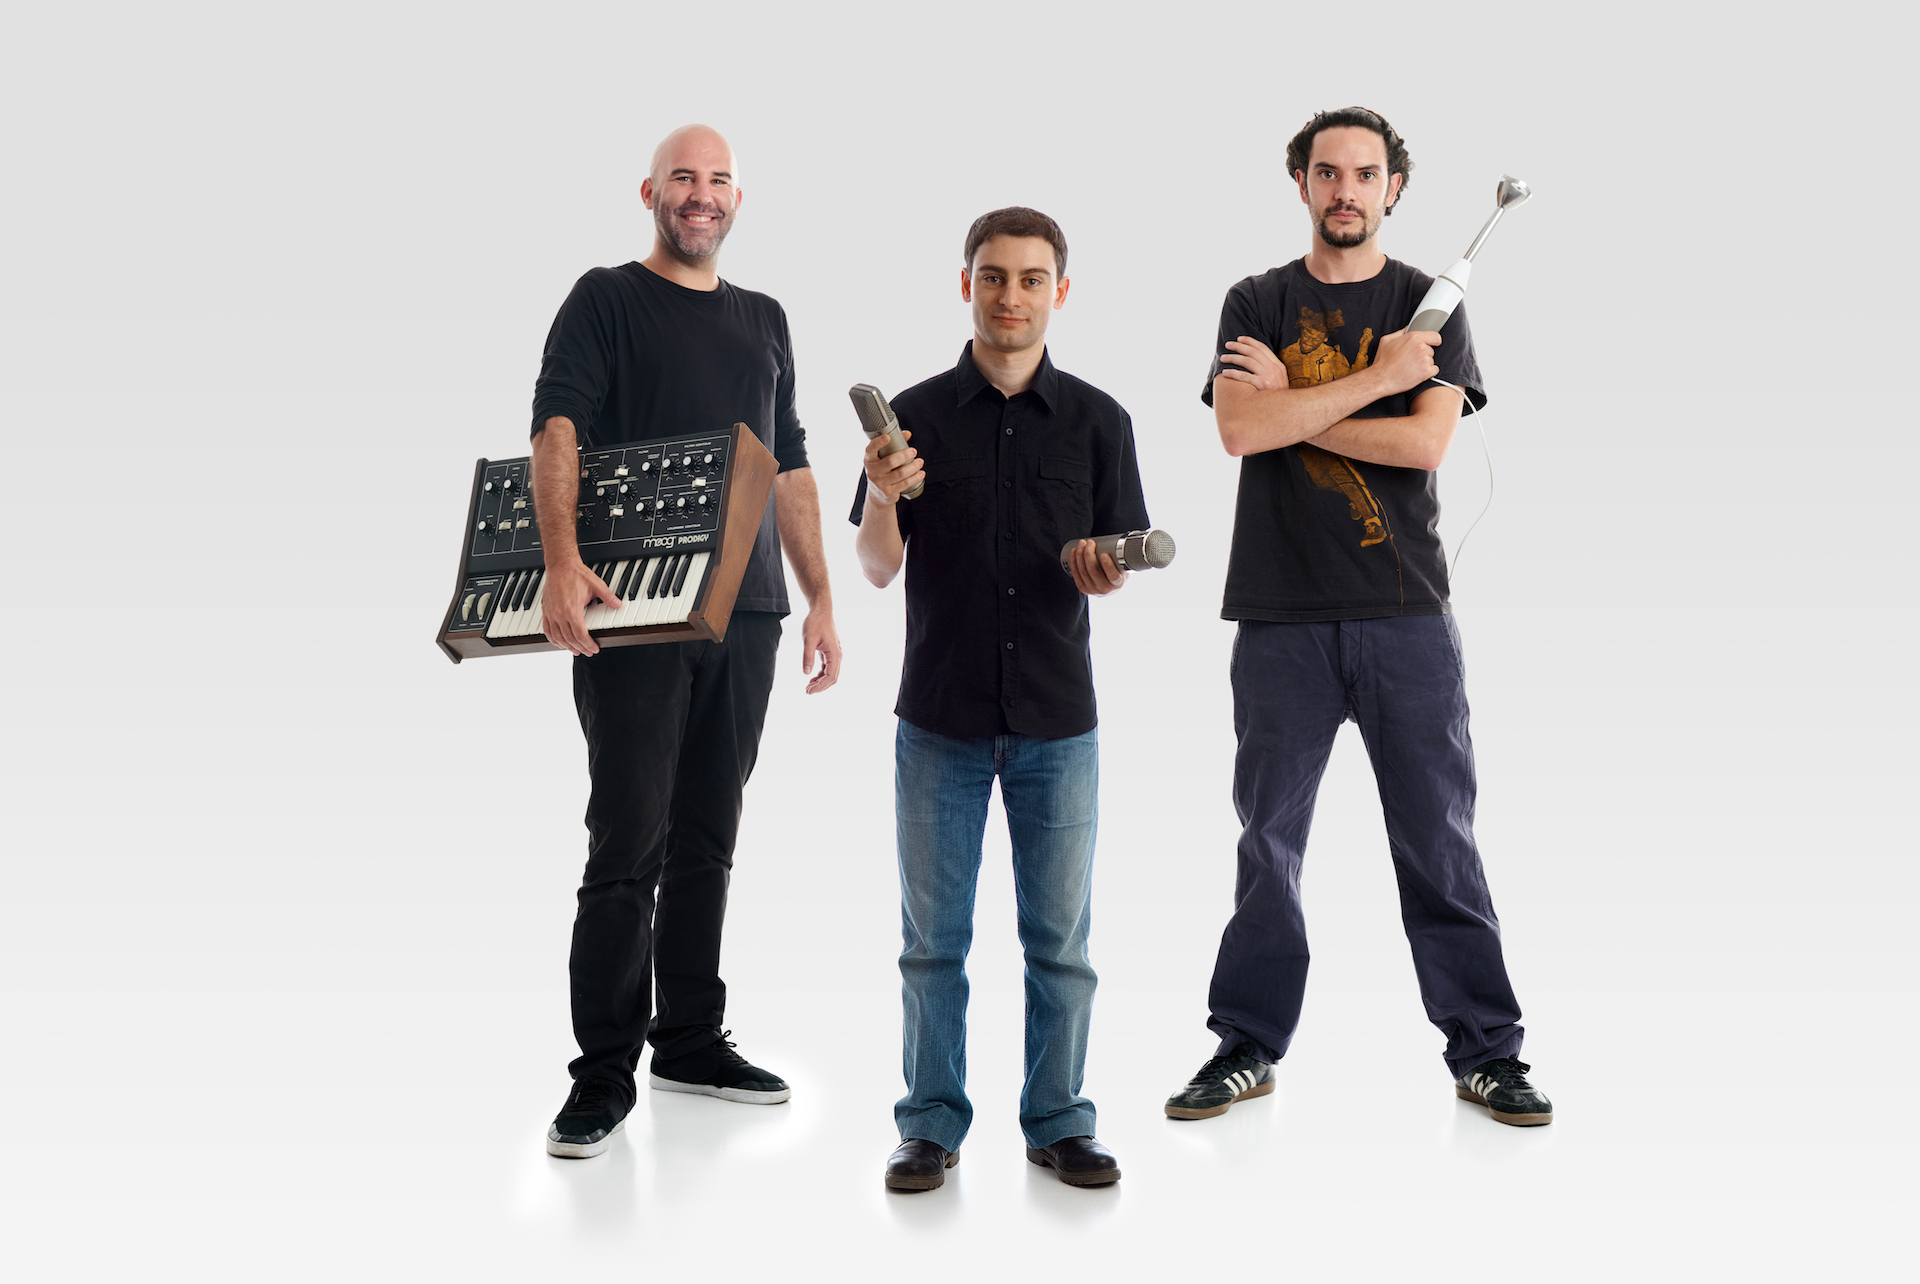 Jordi, Lluís and Javi - Technical Department